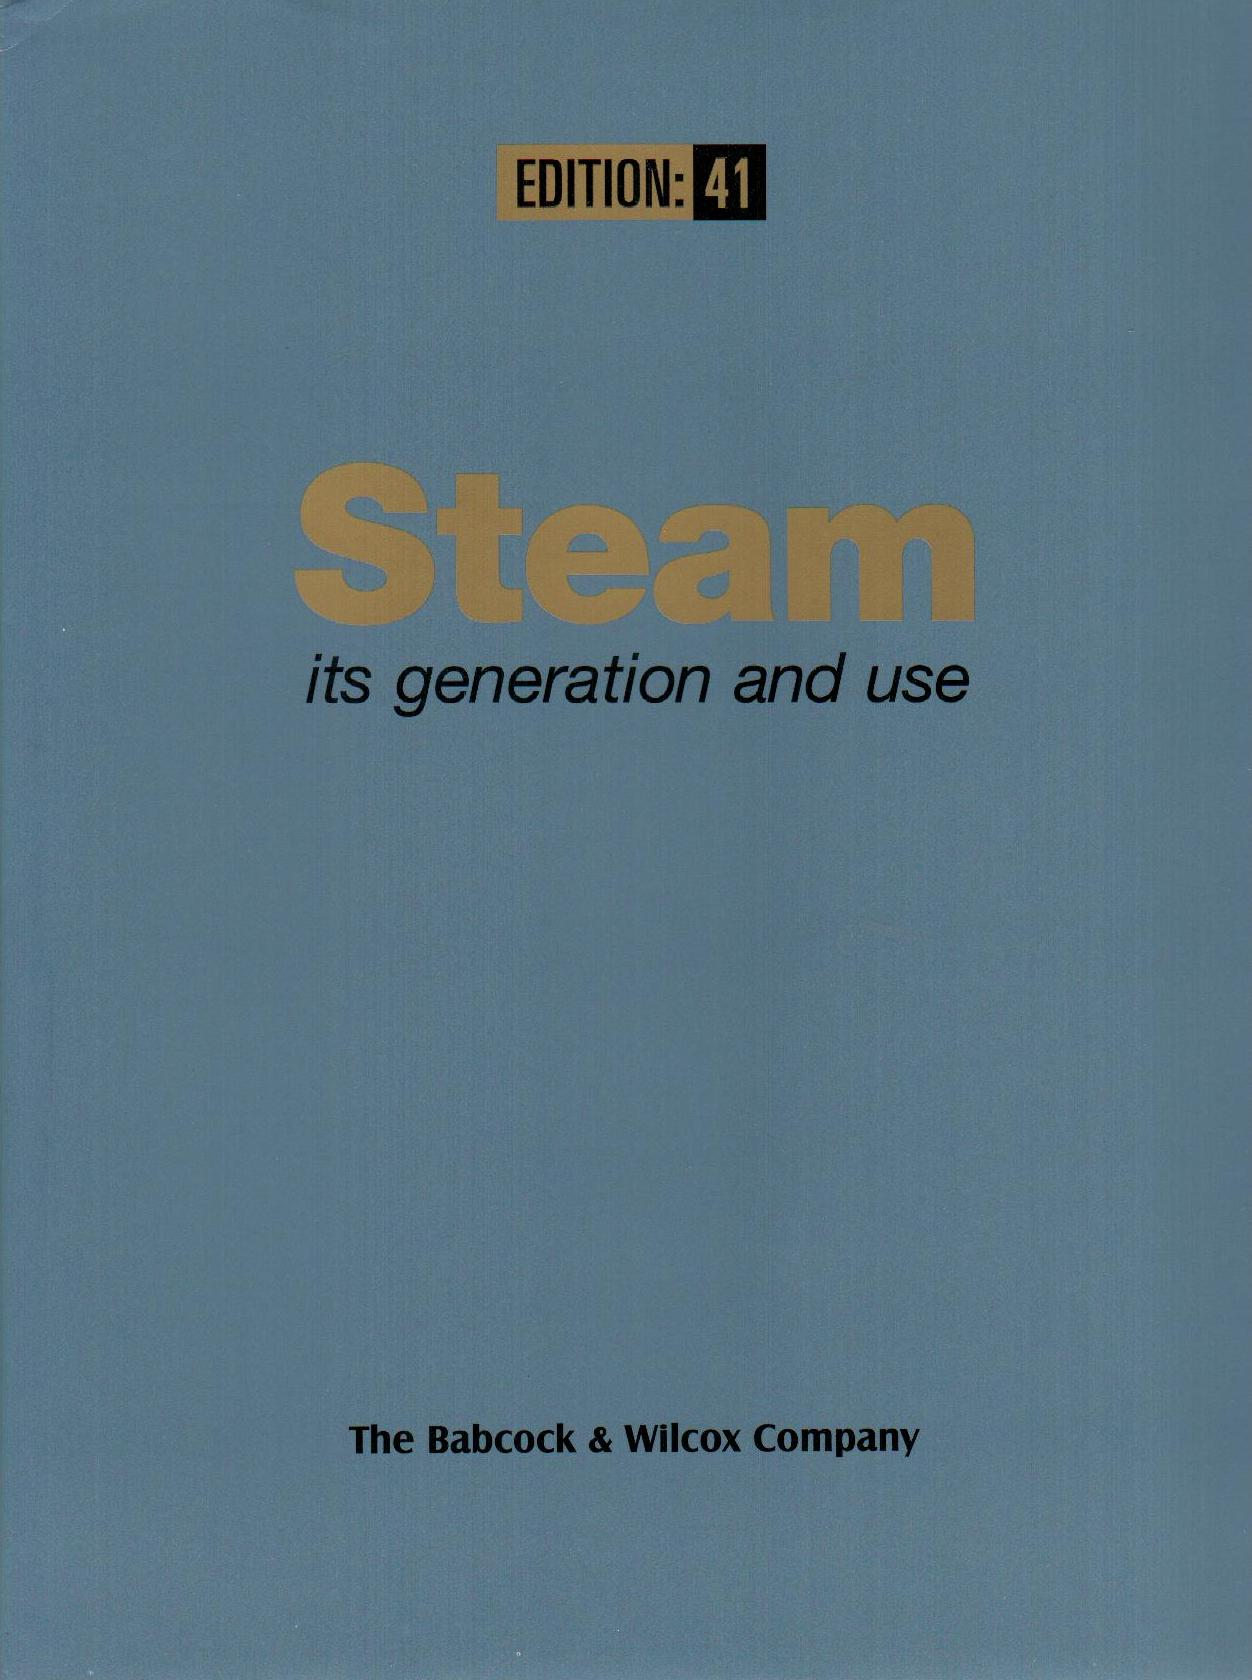 Steam its generation and use - The Badcock & Wilcox Company